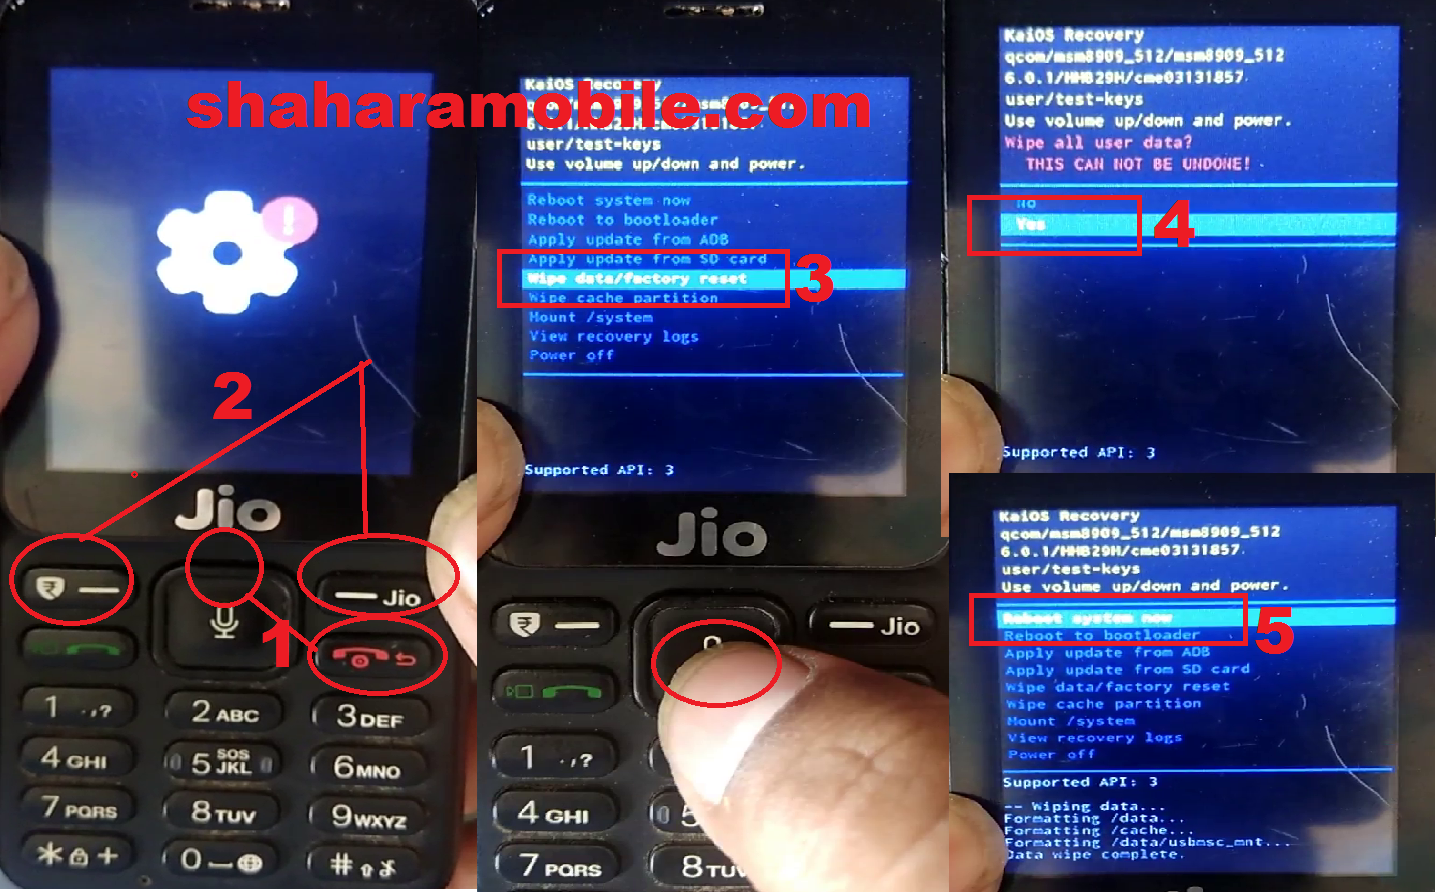 jio lyf f90m hard reset - MOBILE SOFTWERE AND HARDWERE SOLUTION